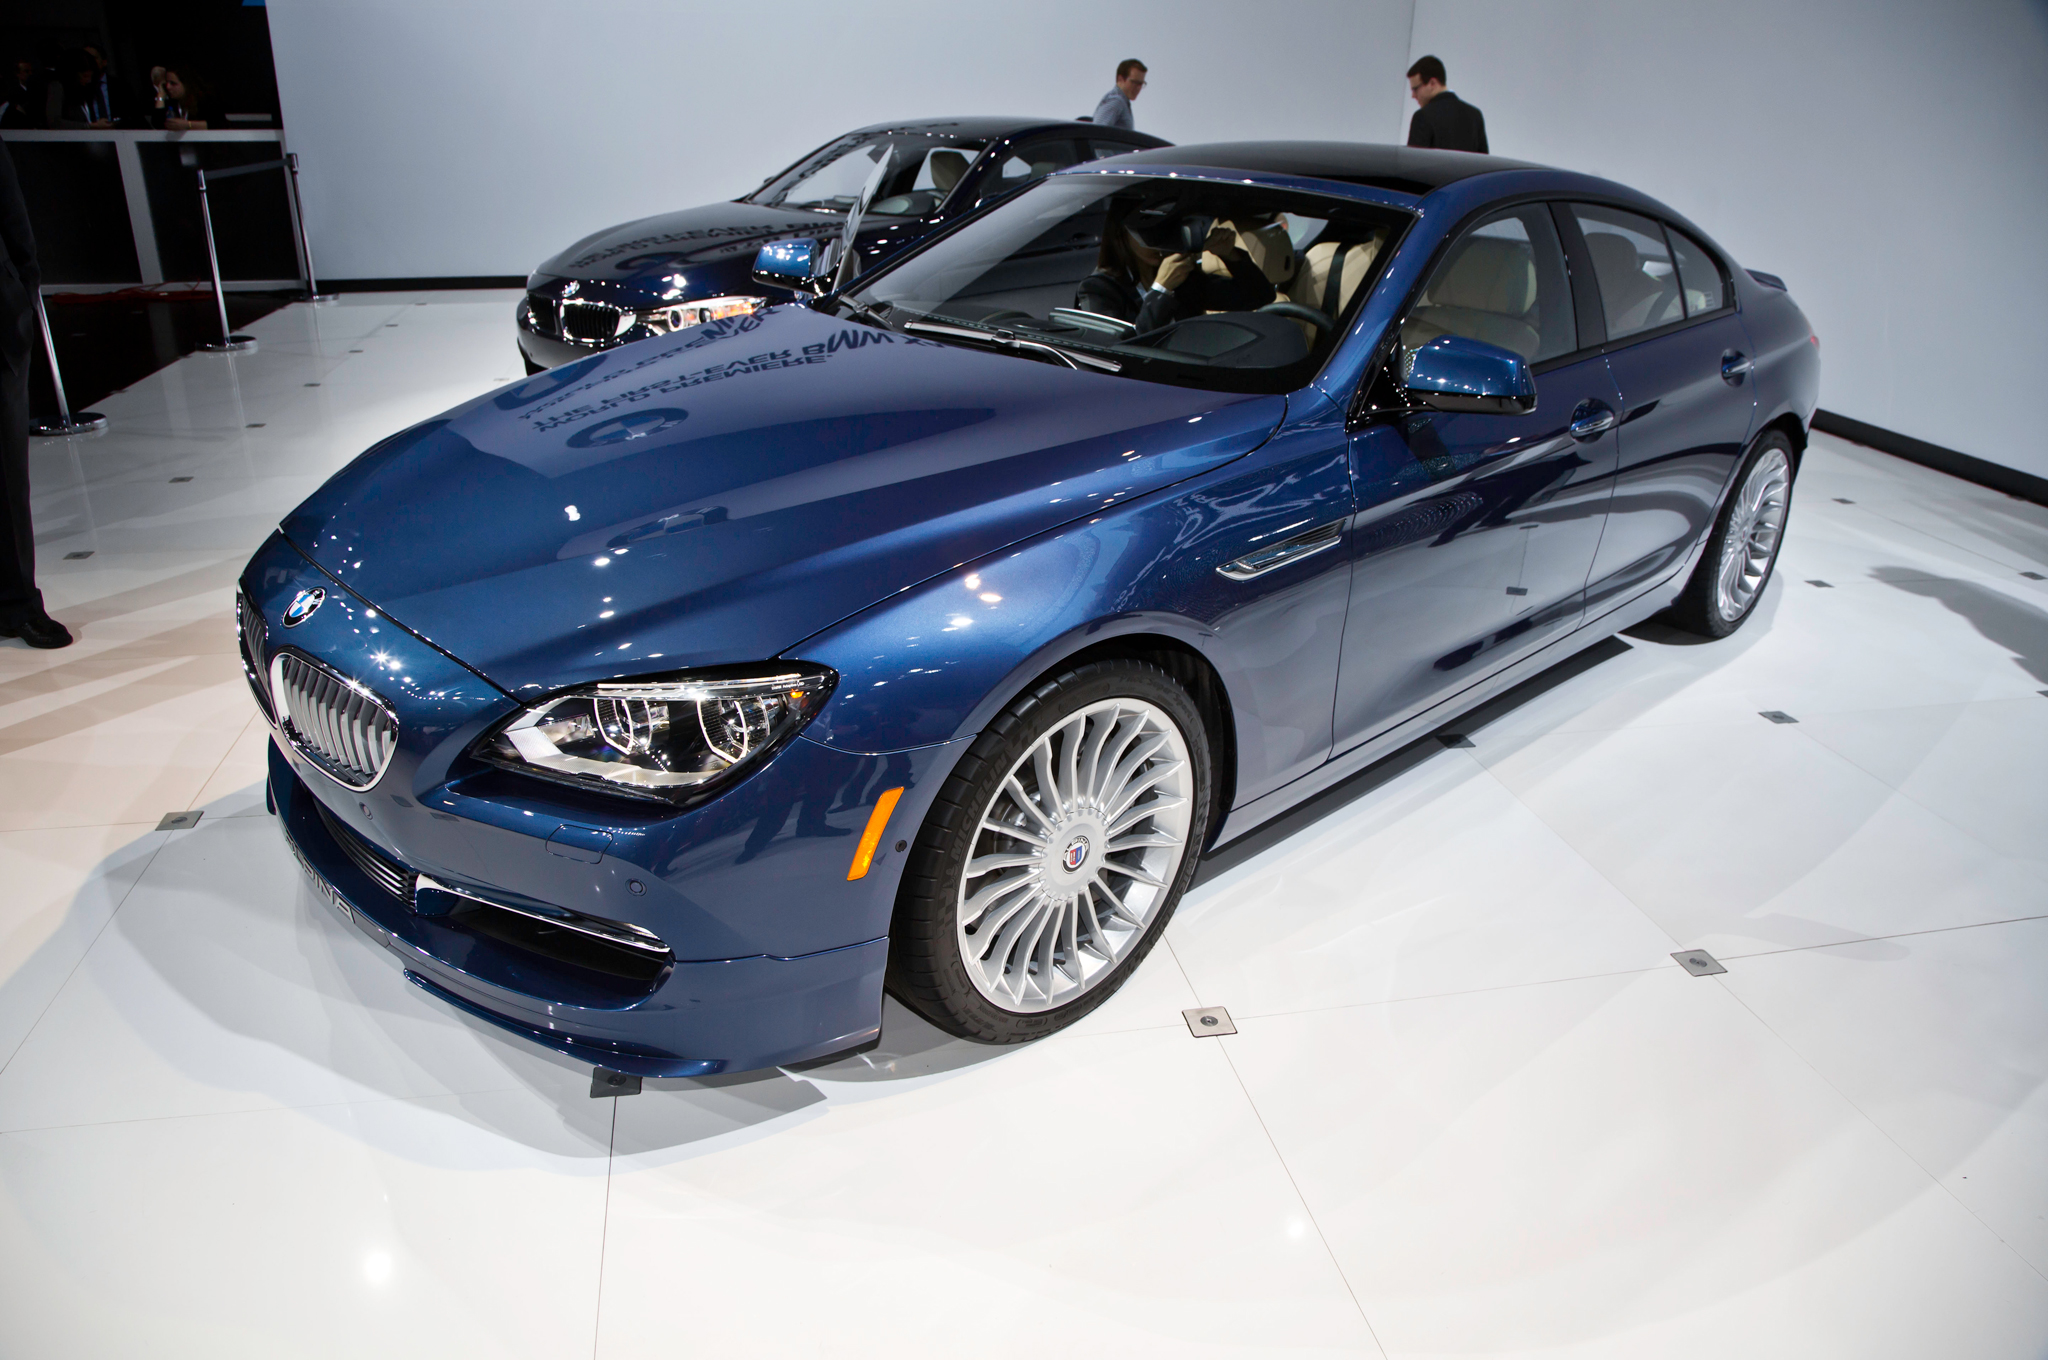 2015 BMW Alpina B6 xDrive Gran Coupe Coming to U.S., Starts at $118,225